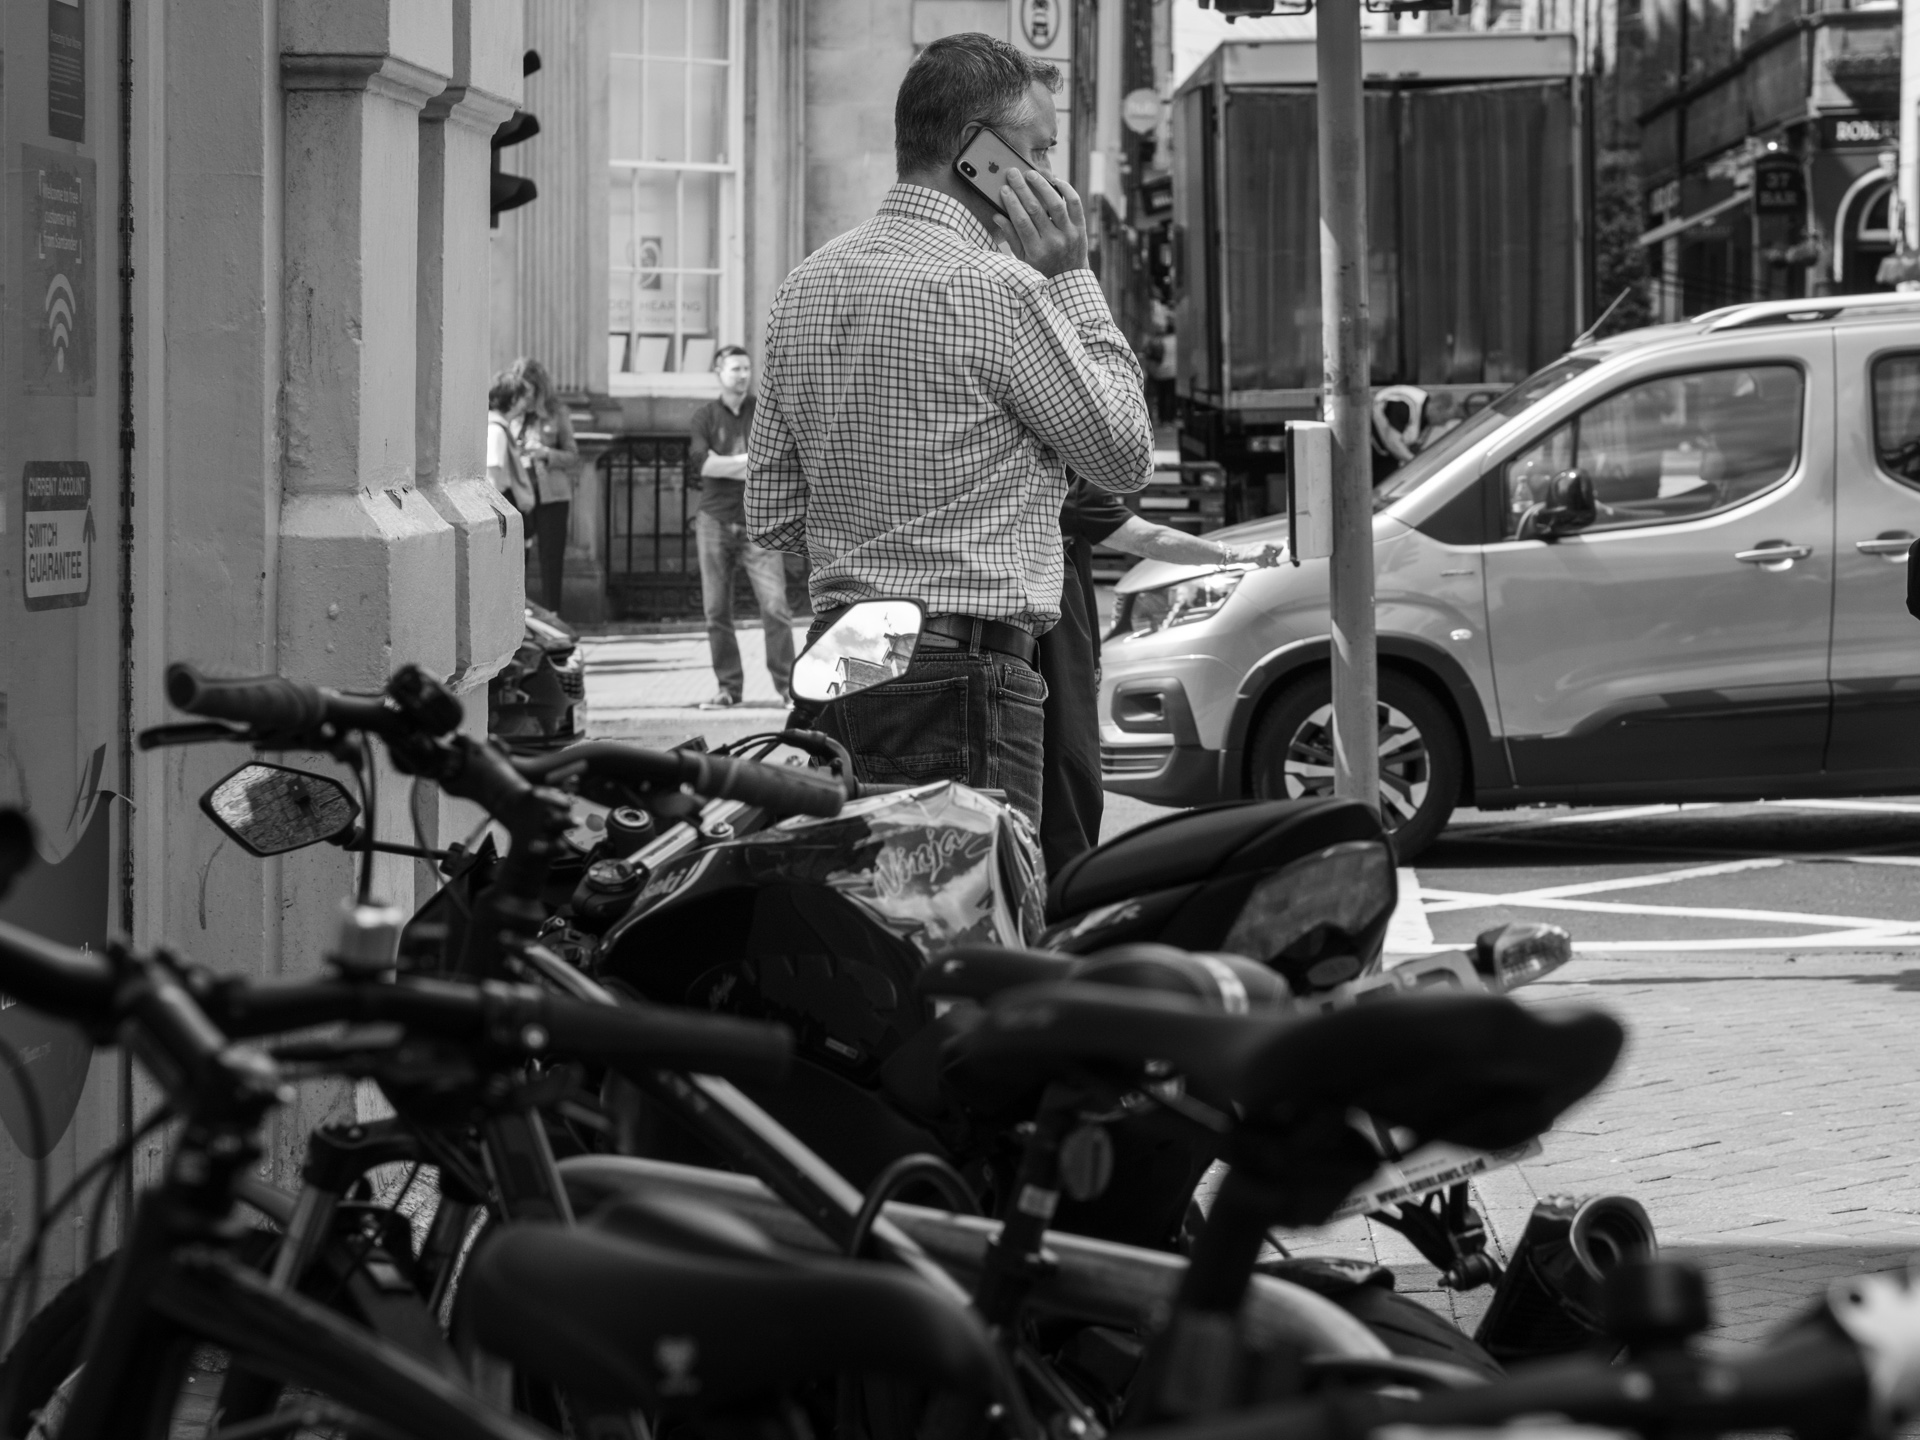 The Manager talking on his phone on a busy street